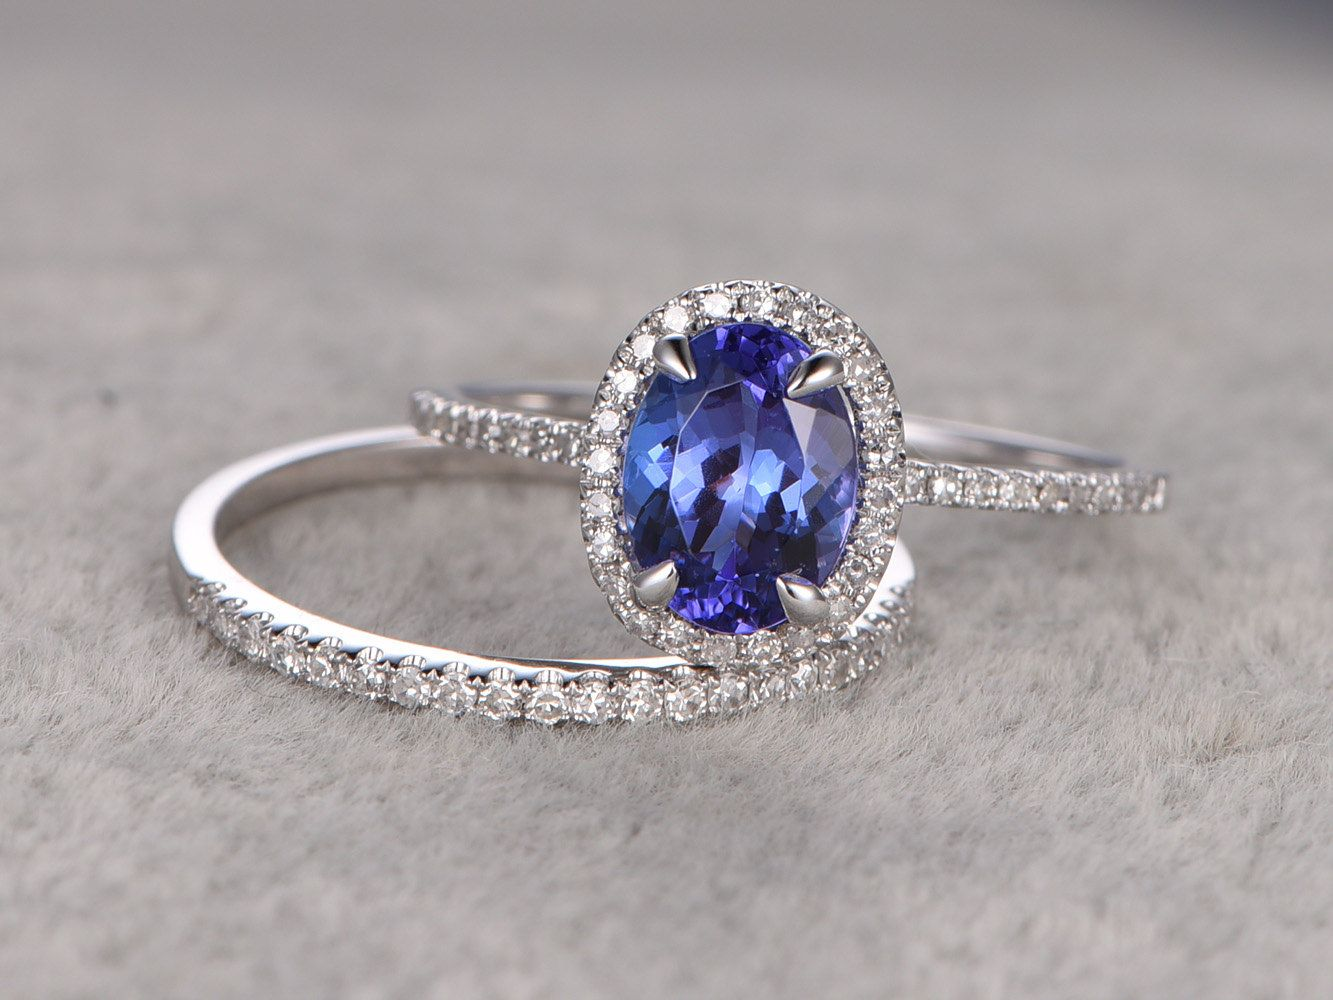 1 28ctw Oval Tanzanite Engagement Ring Vs Diamond Promise 14k White Gold Halo Bridal Wedding Band Blue Gemstone Fine 4a Stone By Popring